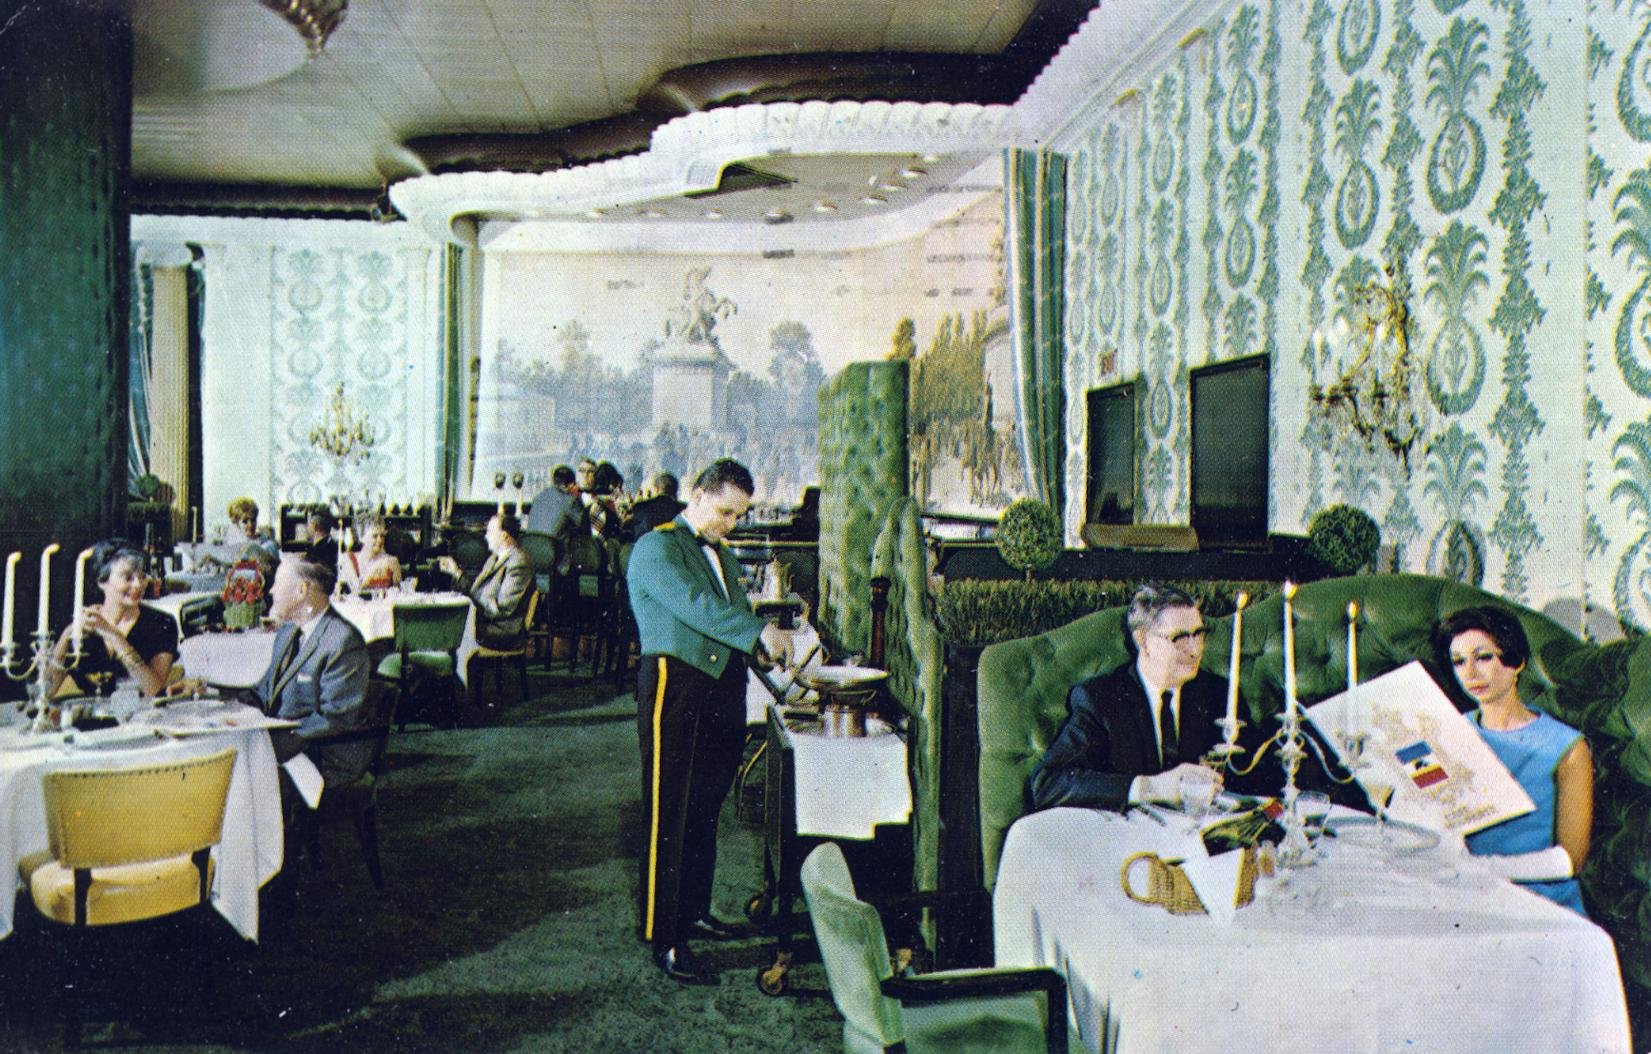 Cafe Bonaparte Sheraton-Blackstone Hotel_Chicago IL Chicago's exciting intimate French dining room of the Napoleonic period Michigan Avenue at Balboa